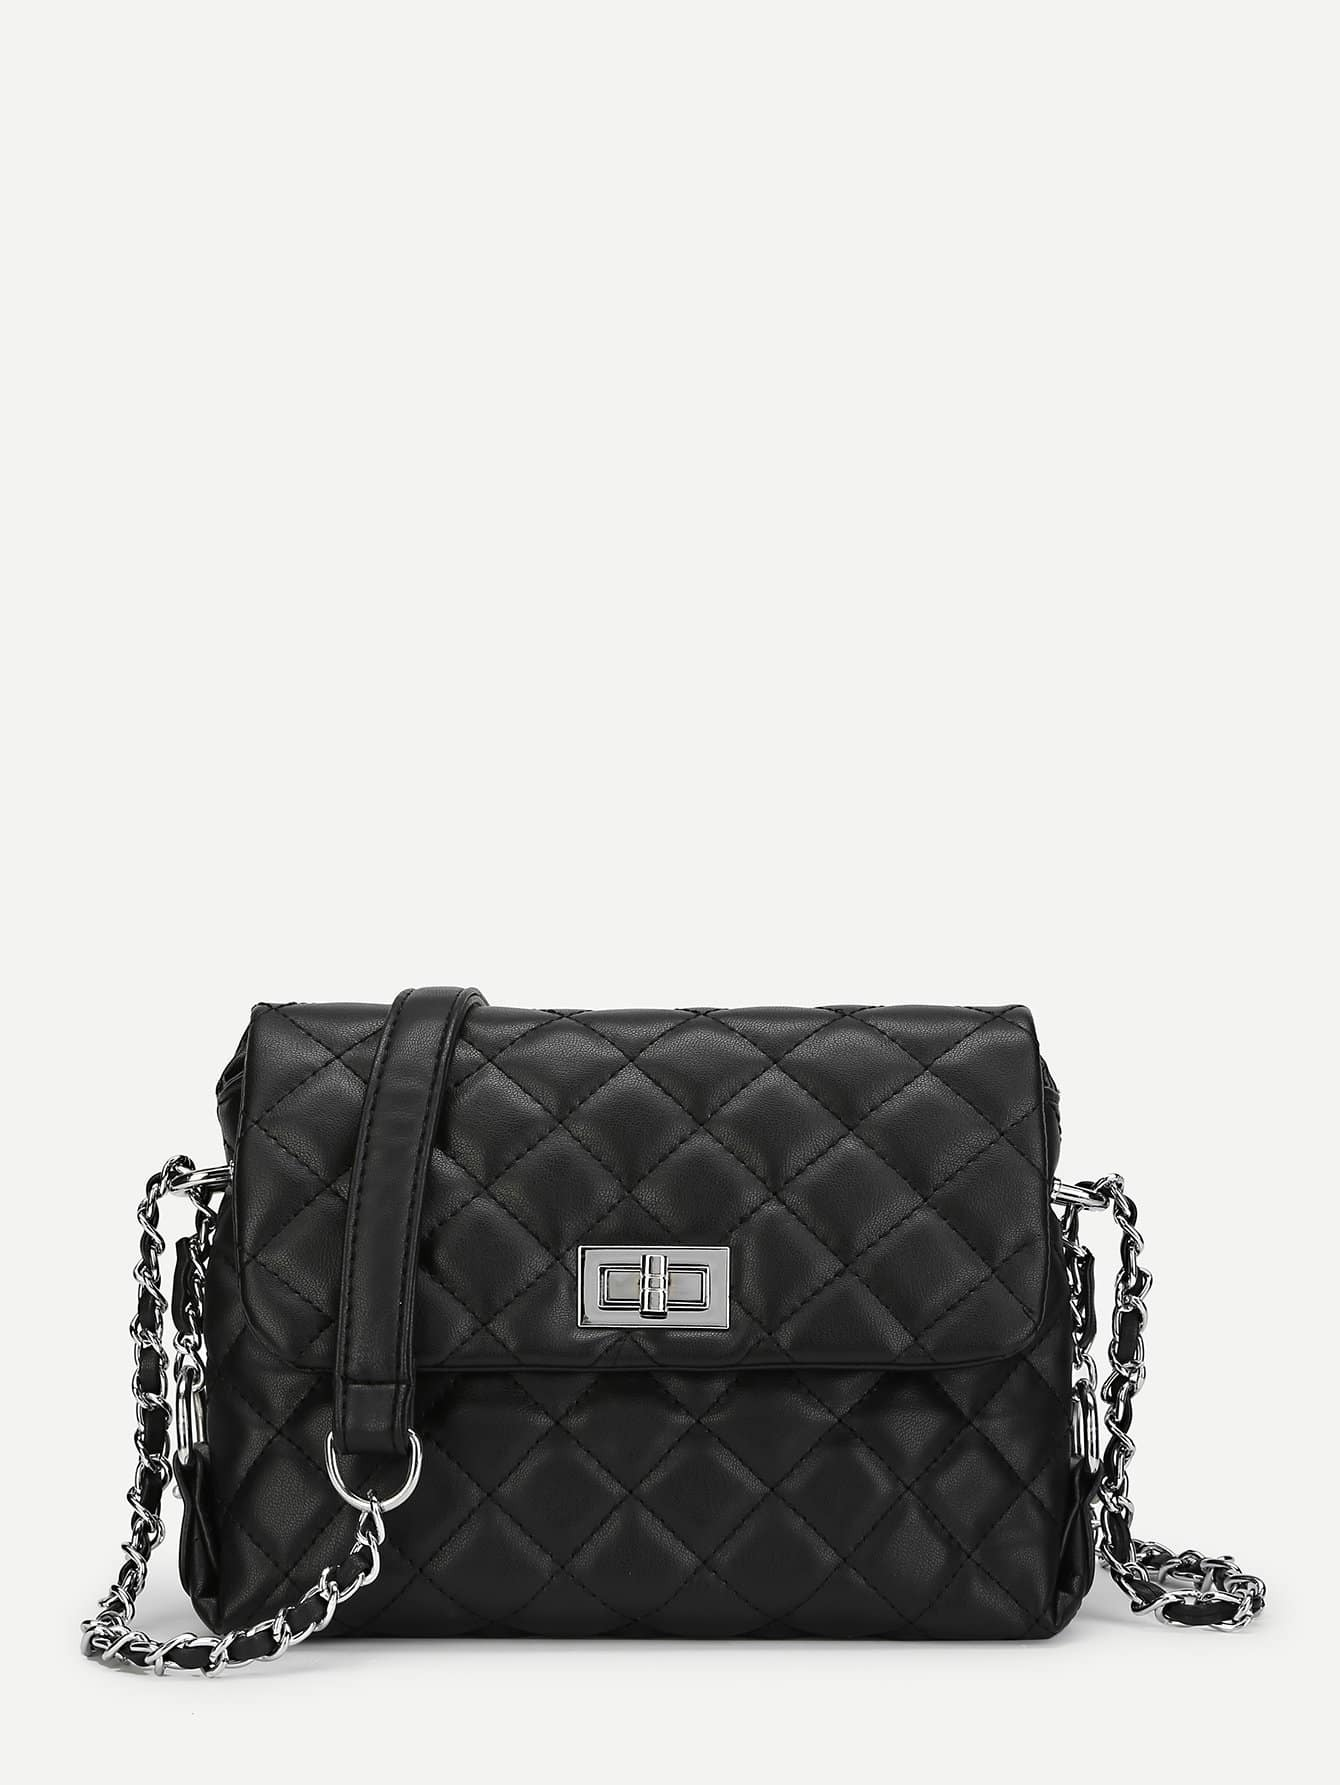 Twist Lock Quilted Chain Crossbody Bag quilted metallic chain bag